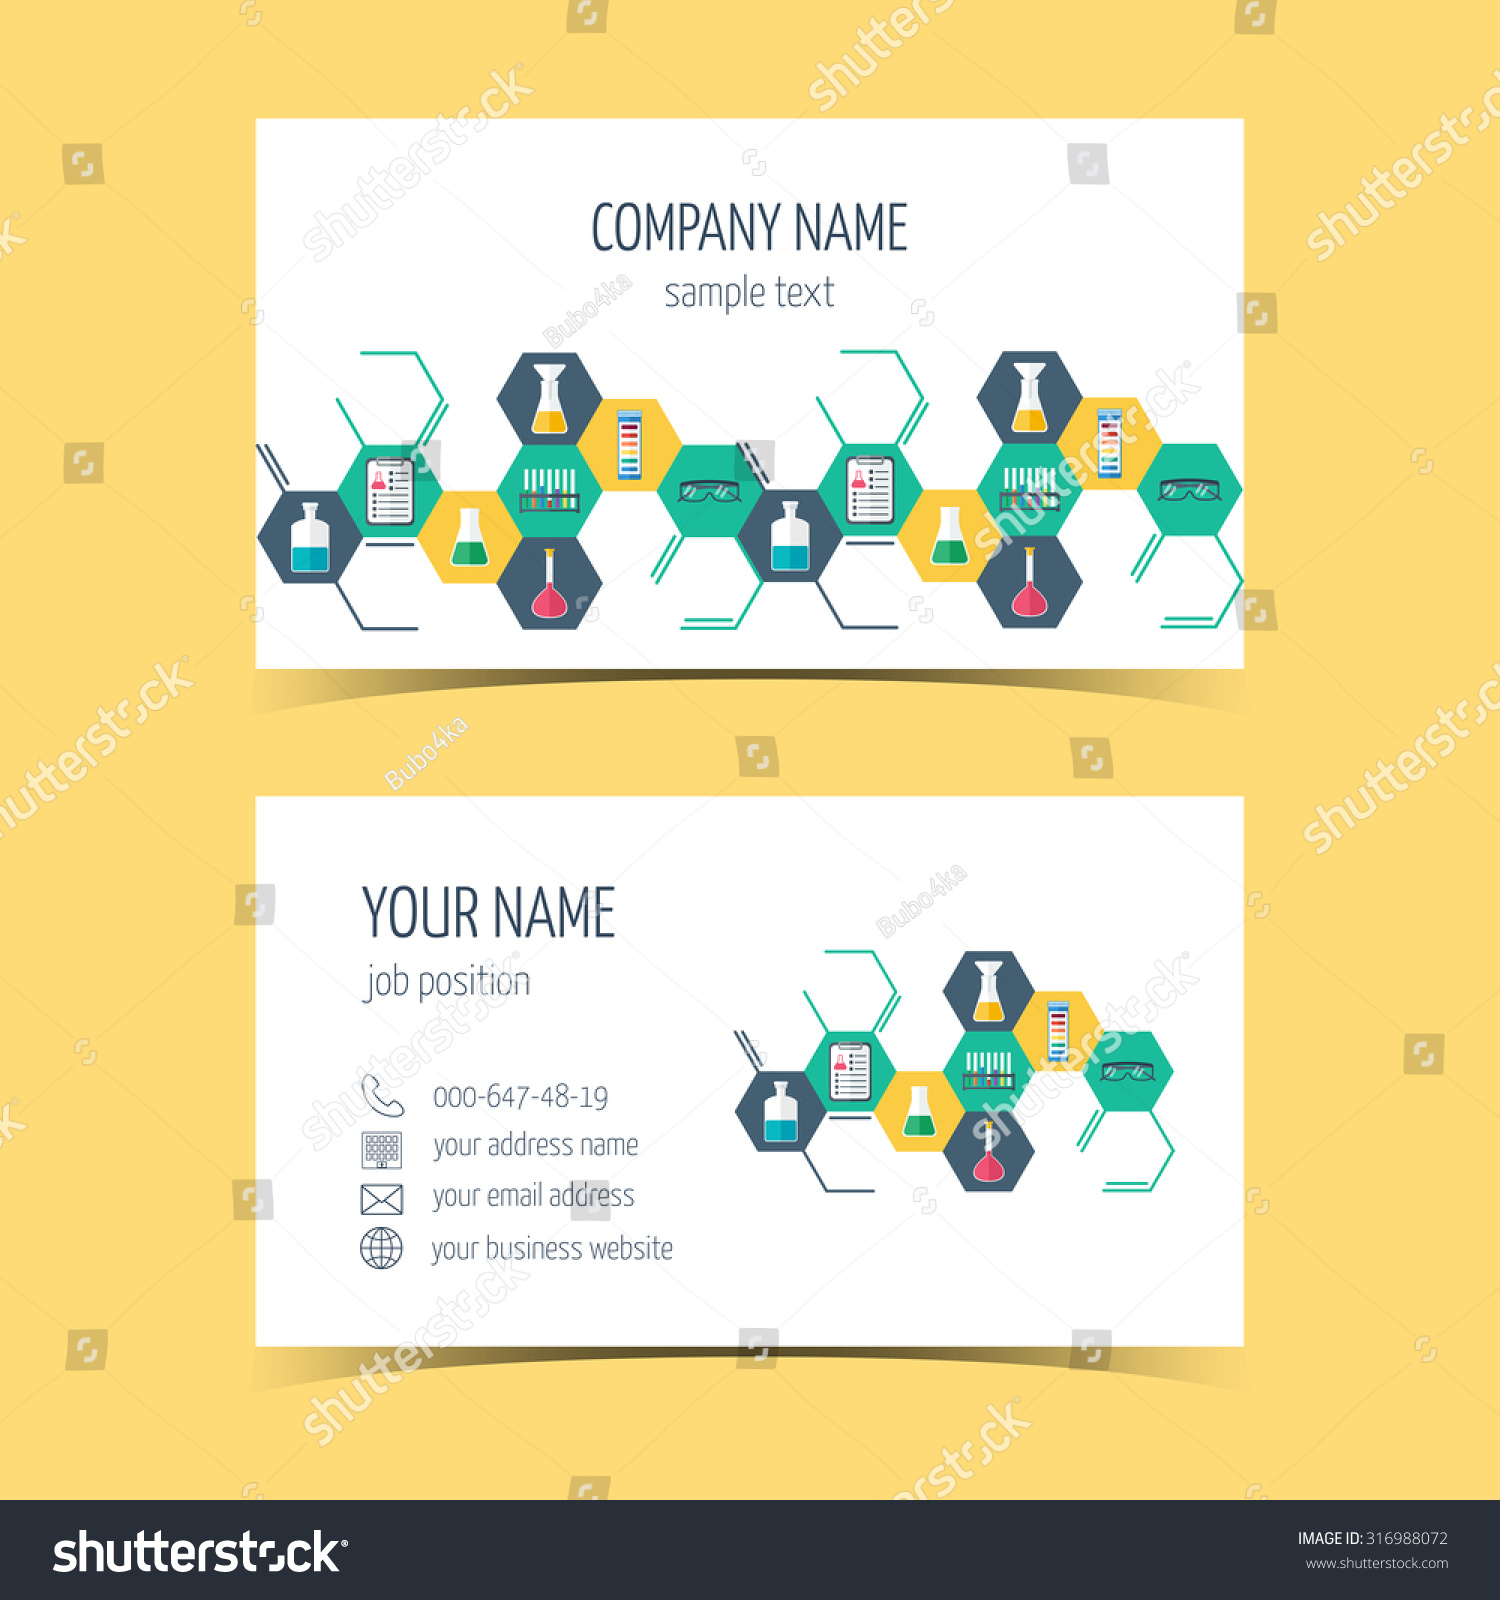 Business Cards Chemical Scientific Companies Promotional Stock ...